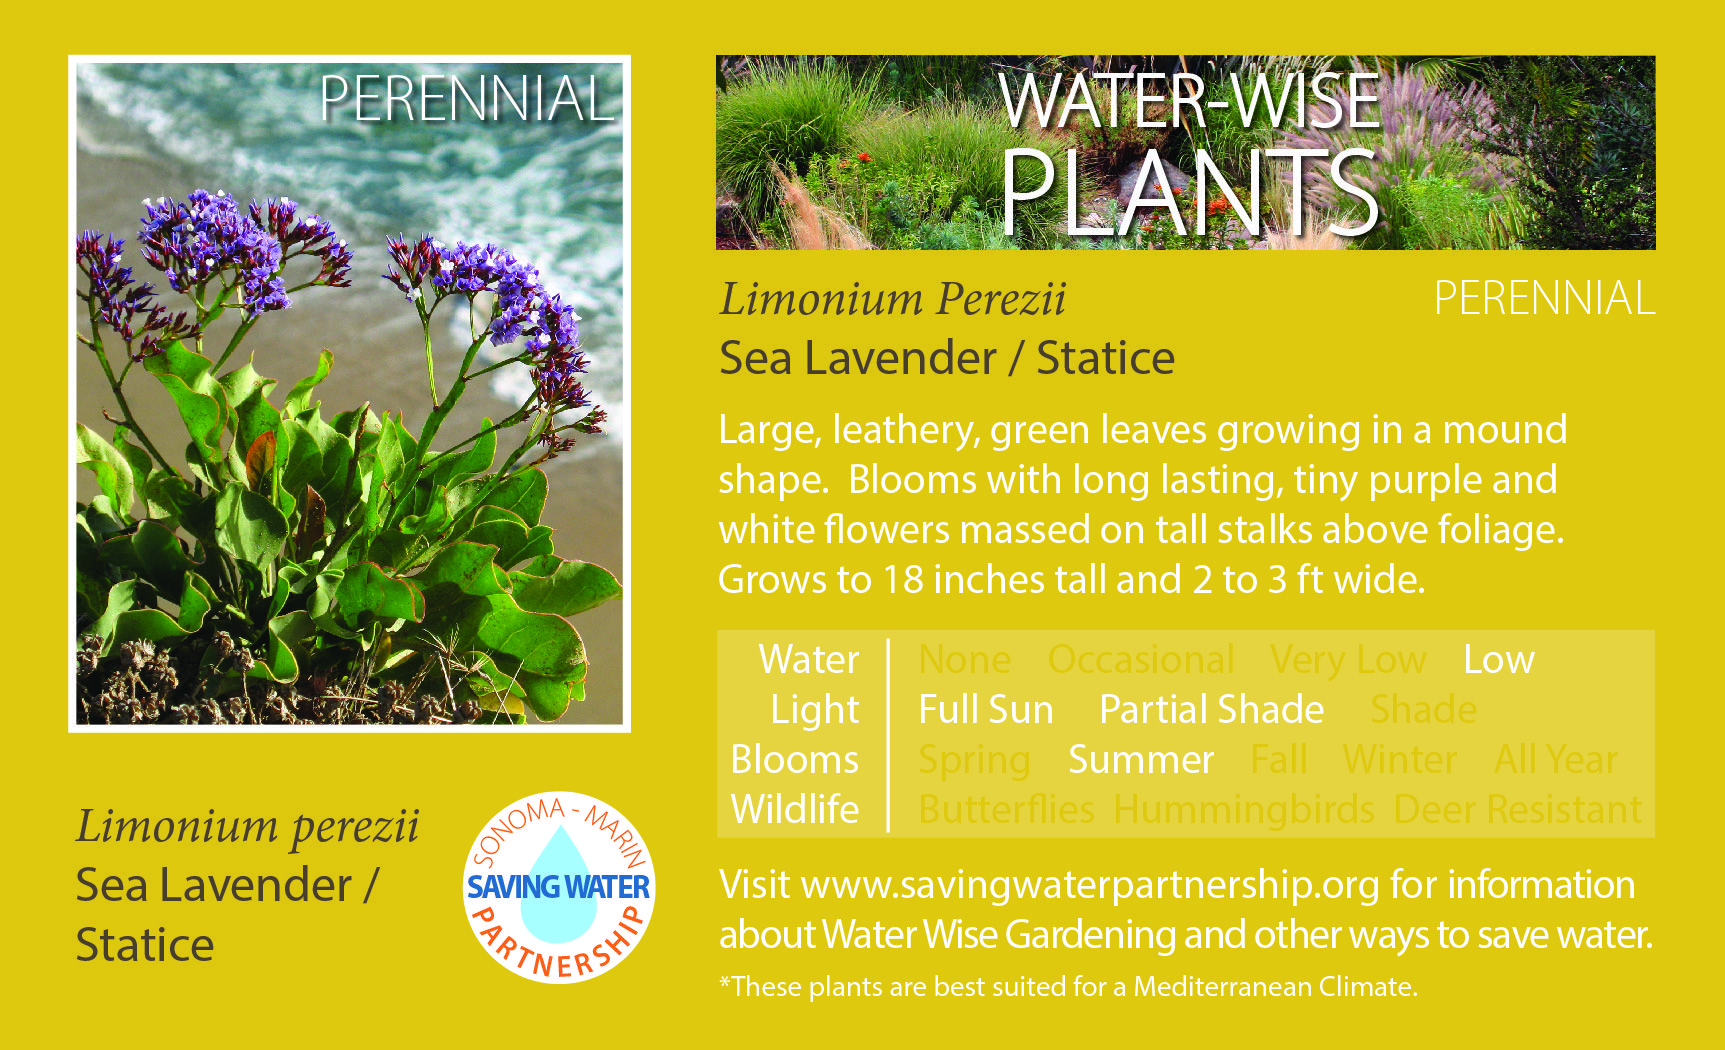 Limonium Perezii Sea Lavenderstatice Blooms With Long Lasting